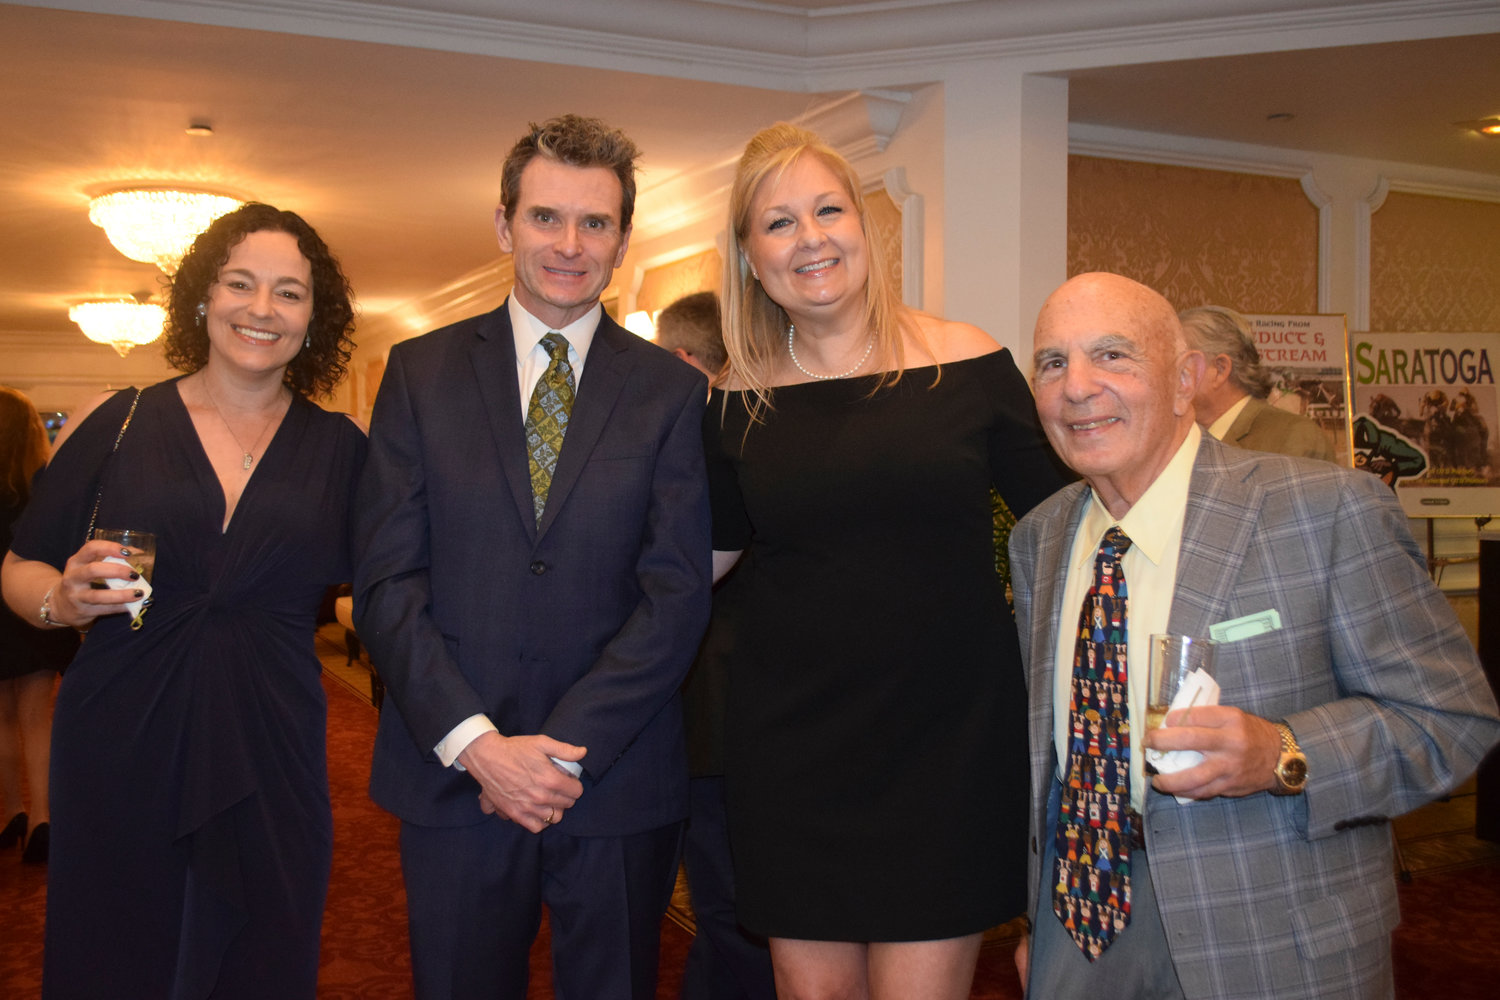 At SIBSPlace Casino Night from left were auction chair Joeanna Greenberg, Billy Bennett, SIBSPlace social work intern Susanne Bennett and SIBSplace founder  Michael Schamroth.